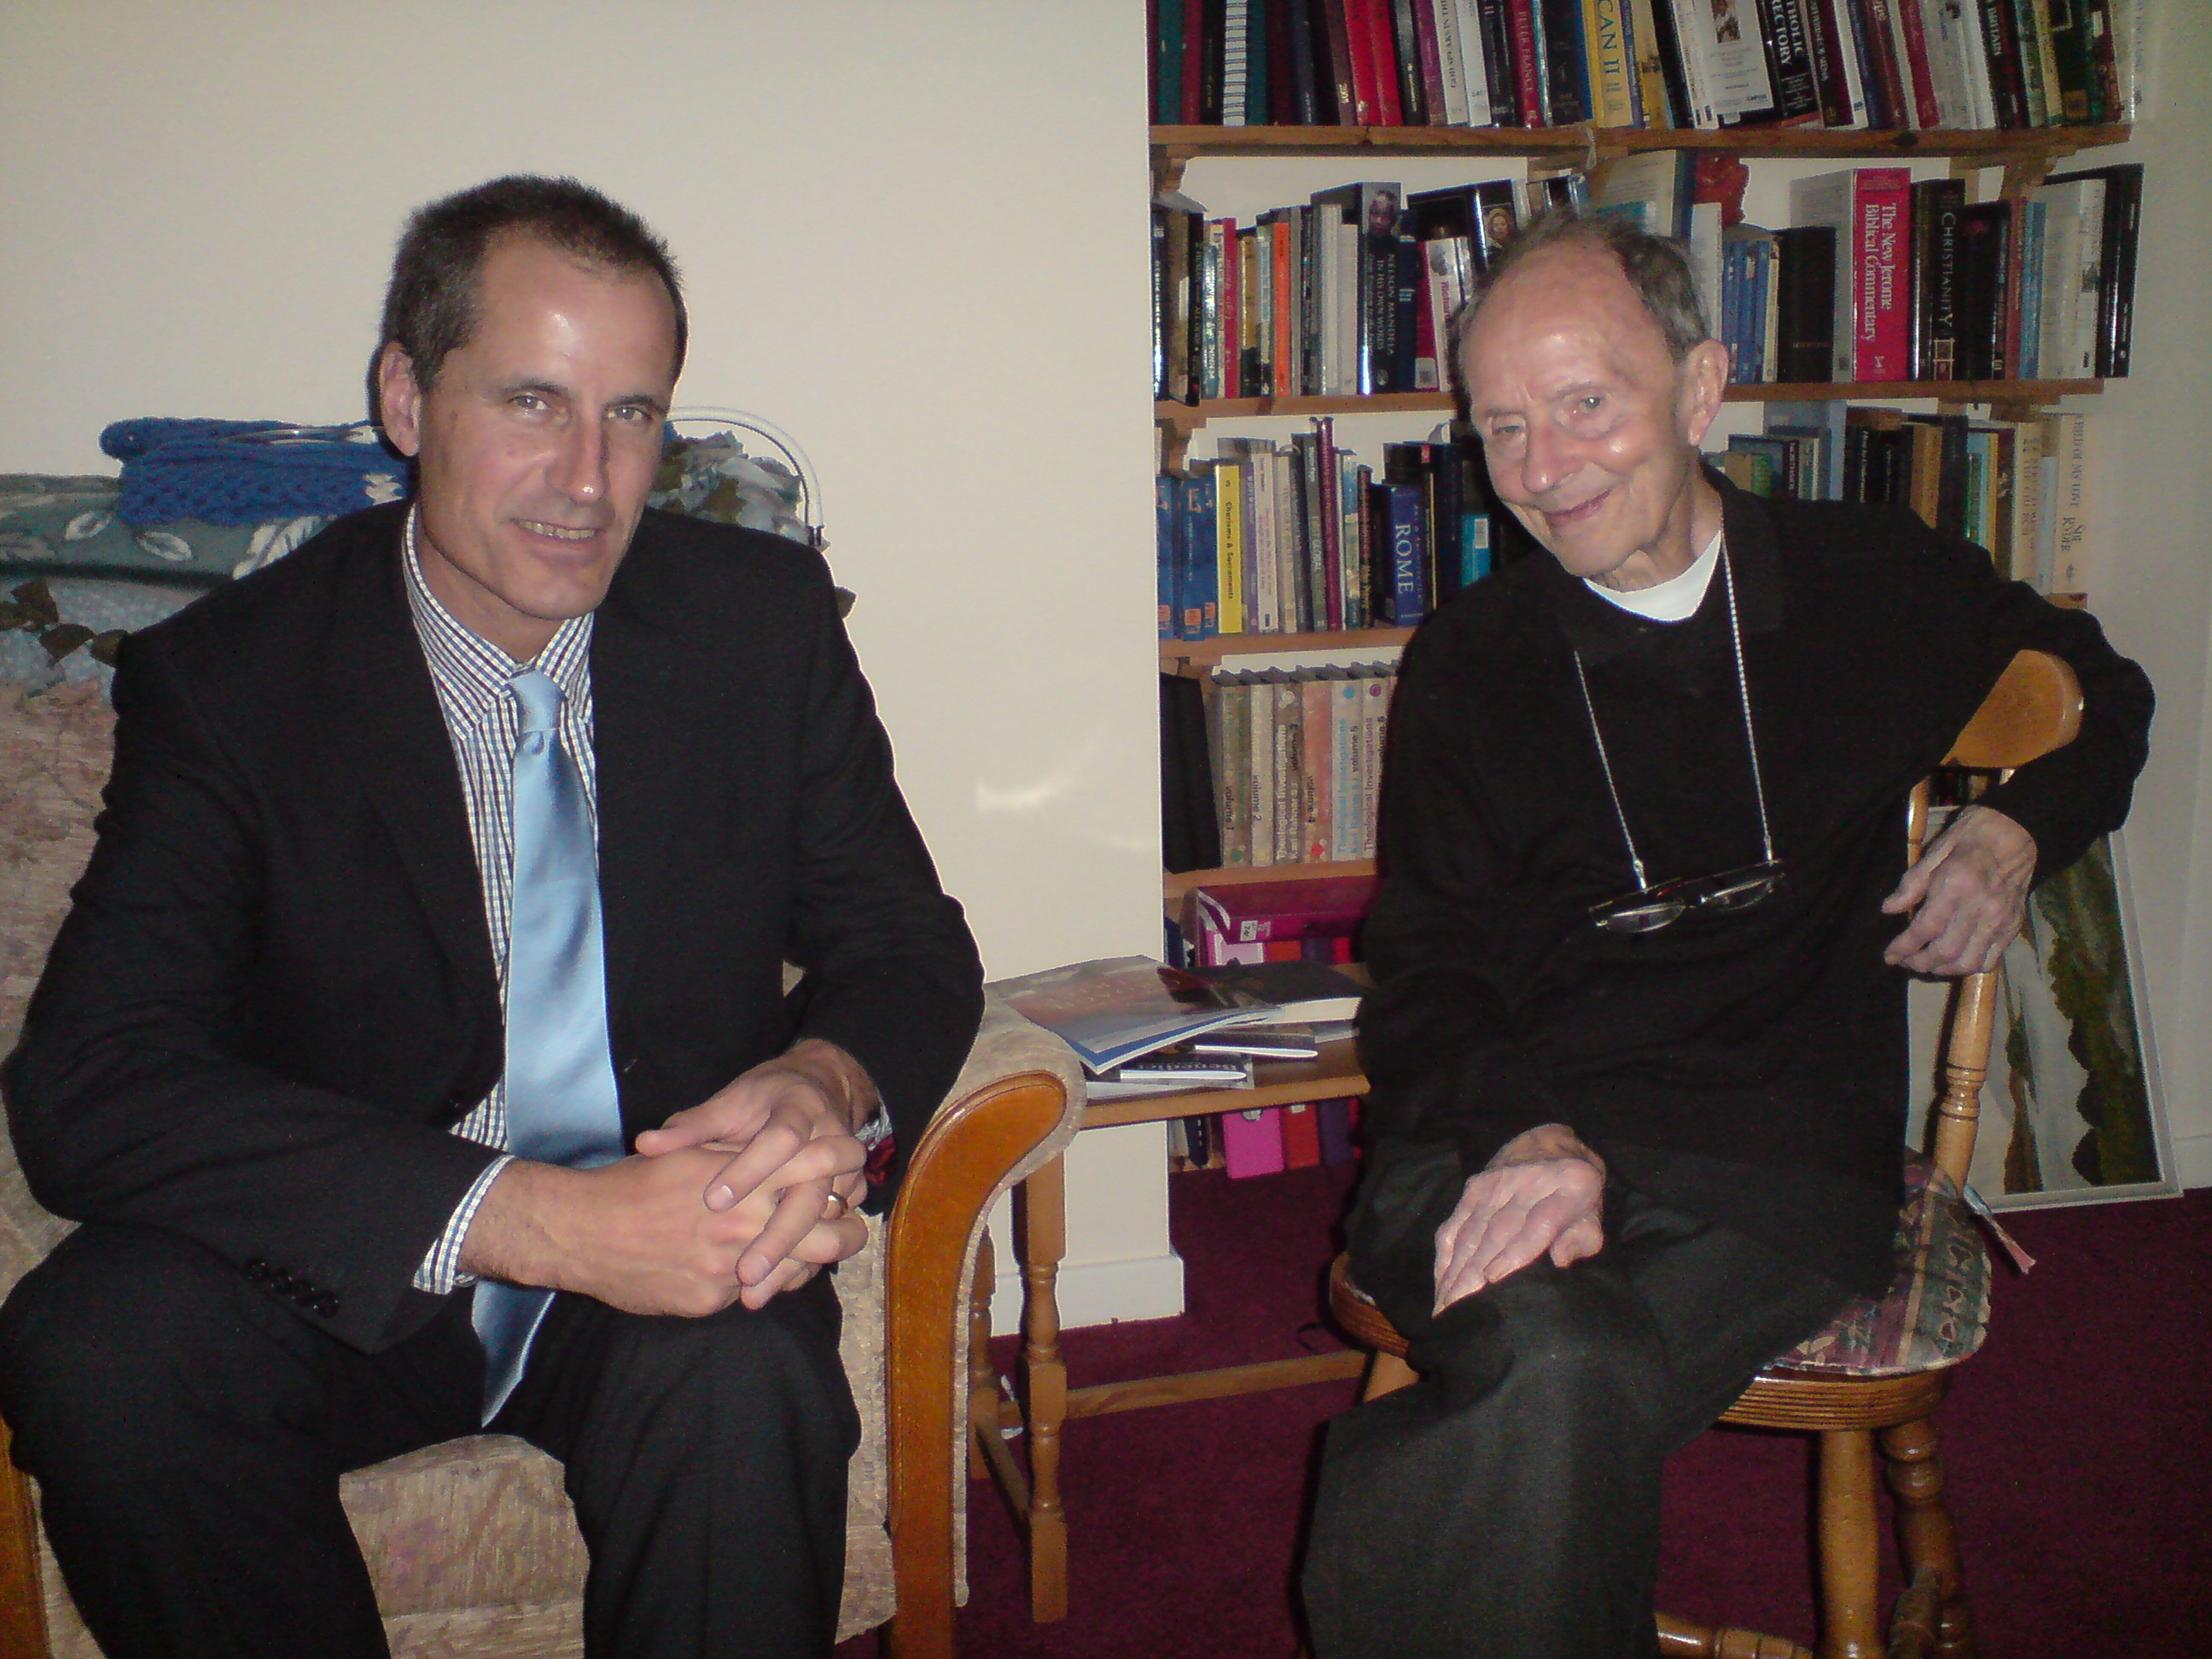 Bill Esterson and Fr Jimmy Collins